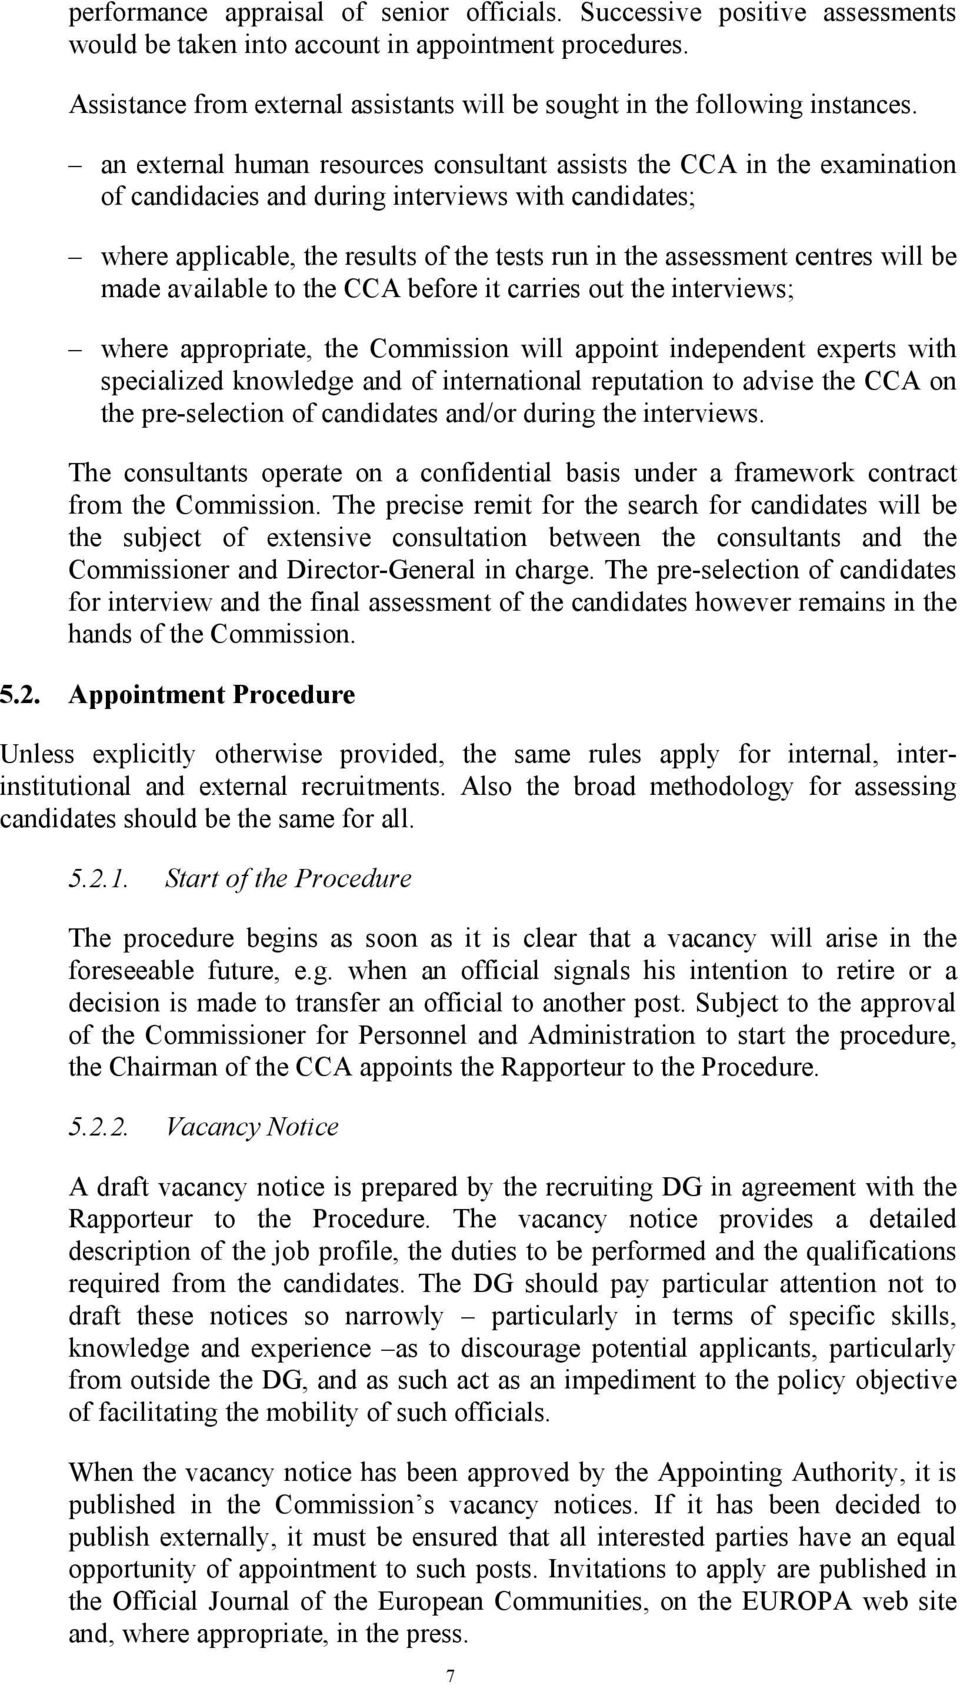 an external human resources consultant assists the CCA in the examination of candidacies and during interviews with candidates; where applicable, the results of the tests run in the assessment